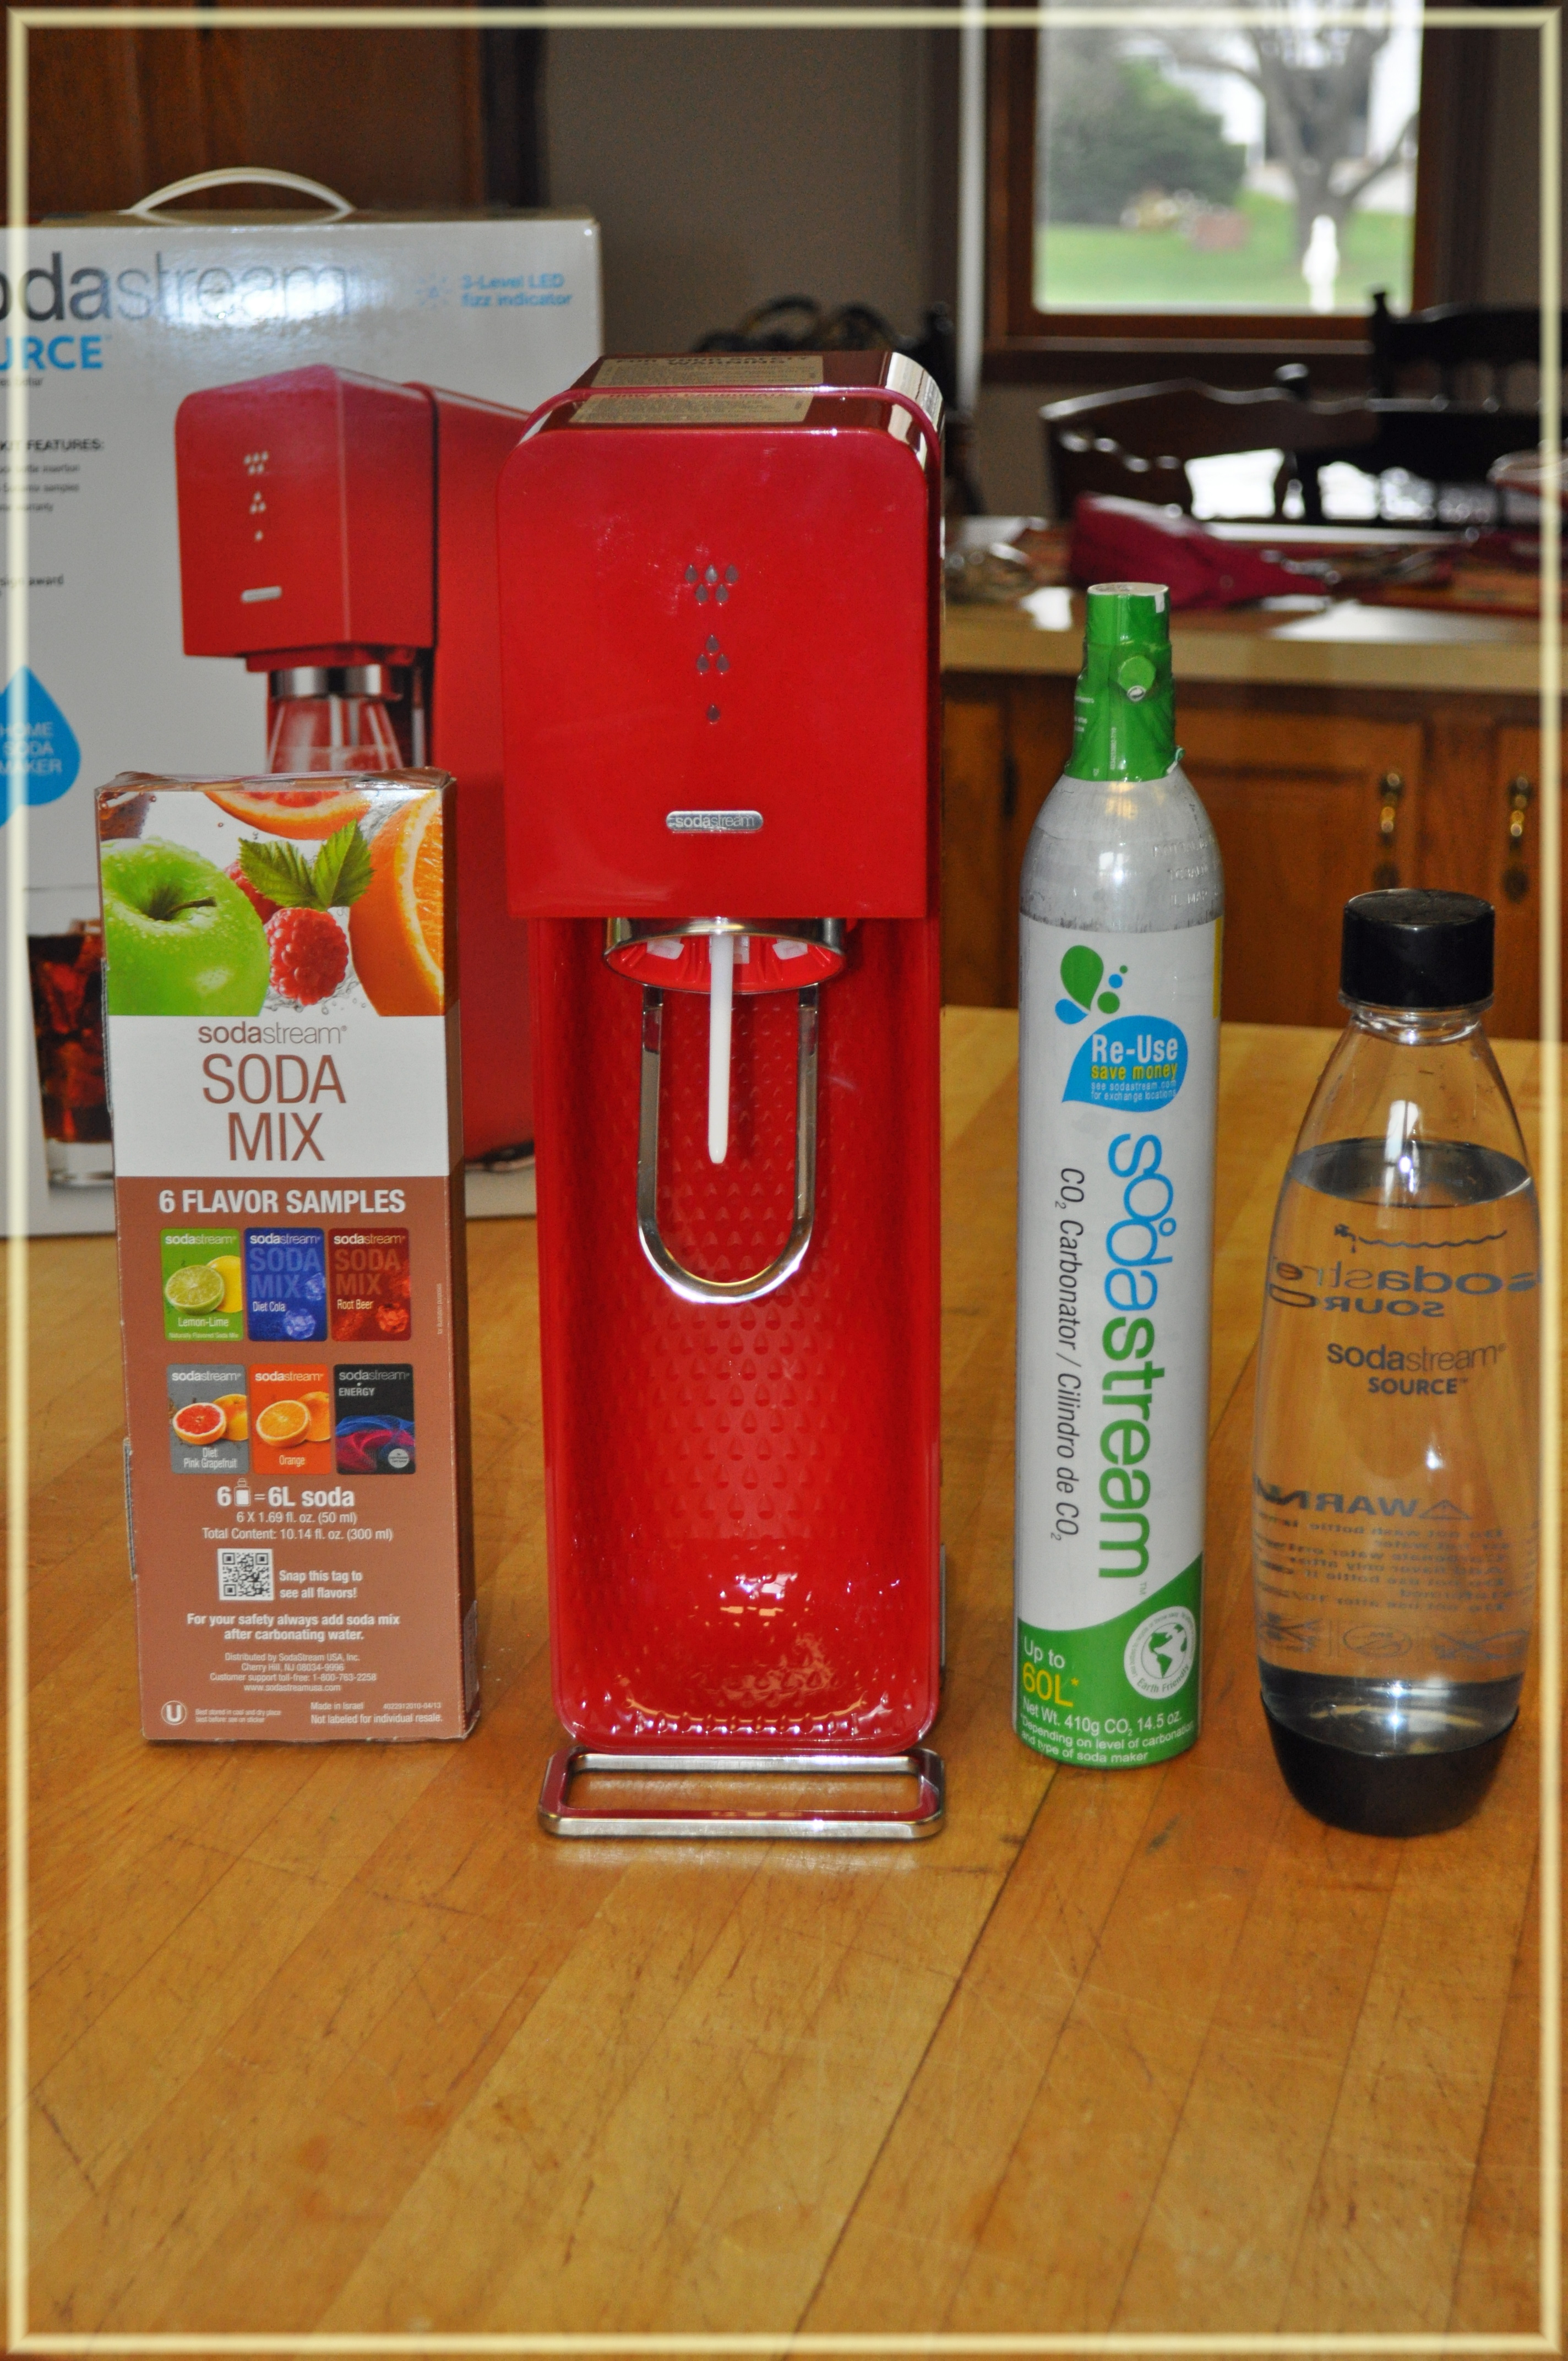 Holiday Gift Guide: Sodastream Soda Maker + #Giveaway